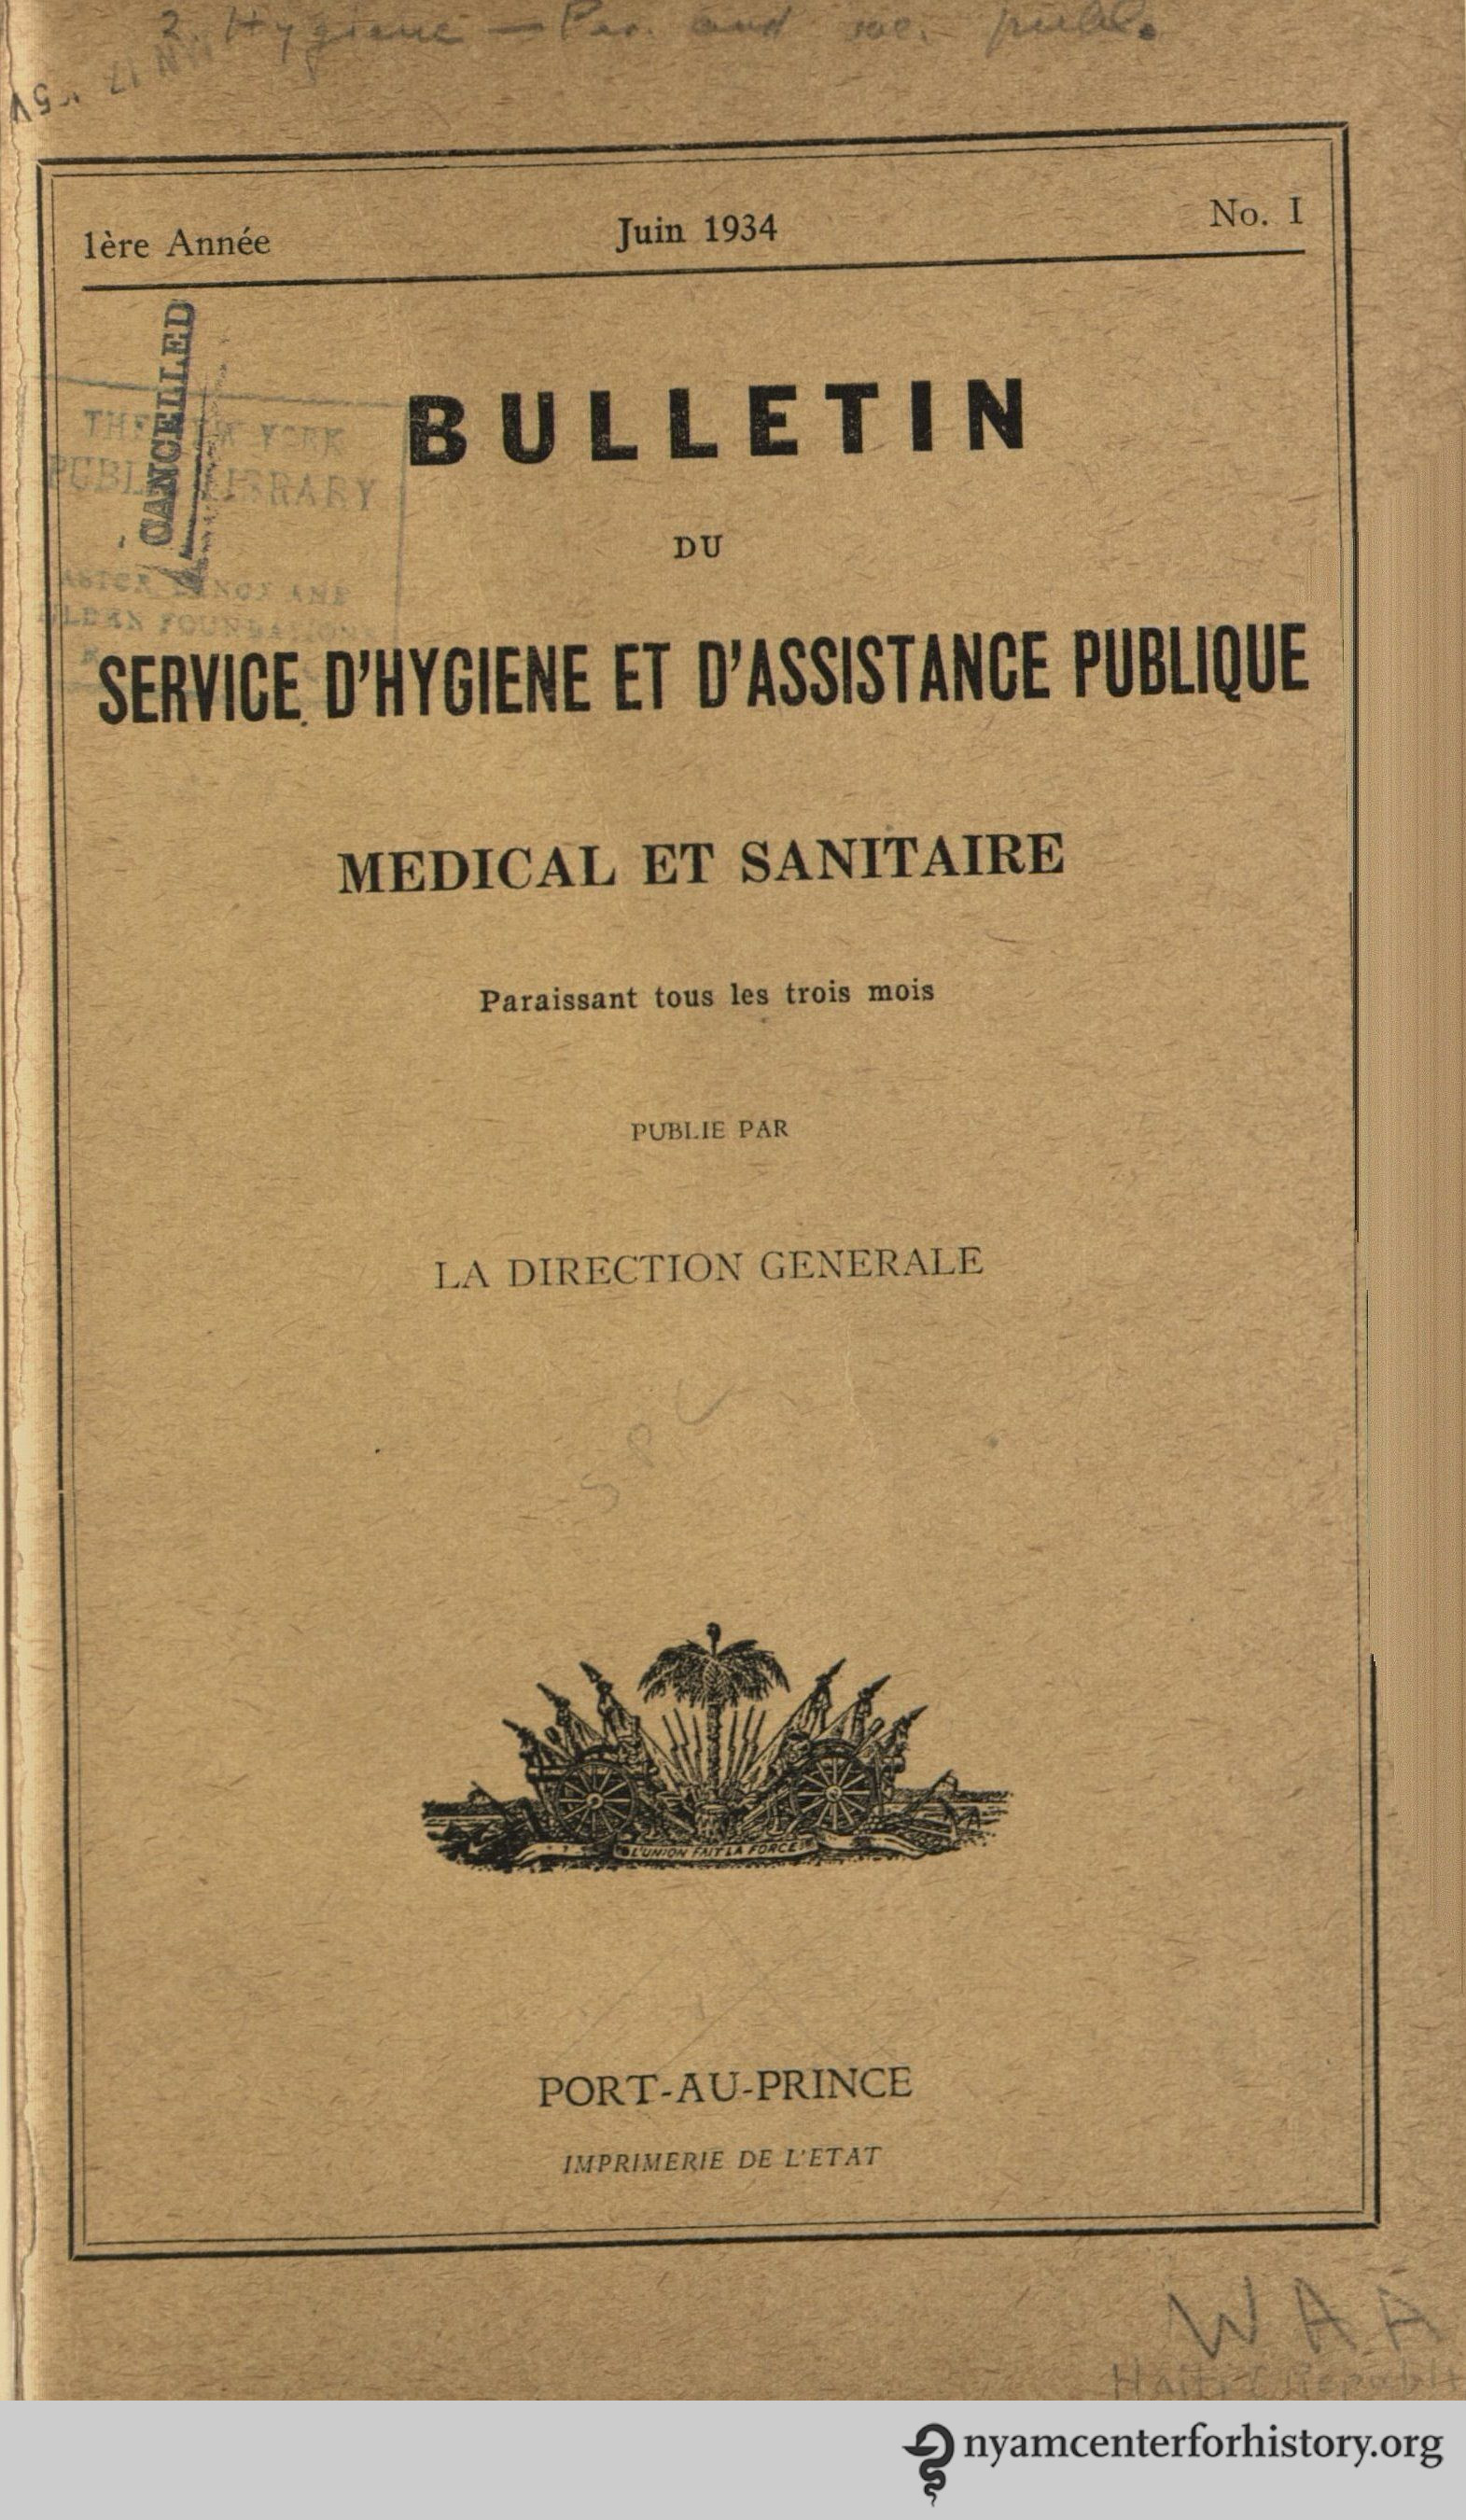 BulletinDuServiceDHygieneEtDAssistancePublique_Jun1934_1_watermark